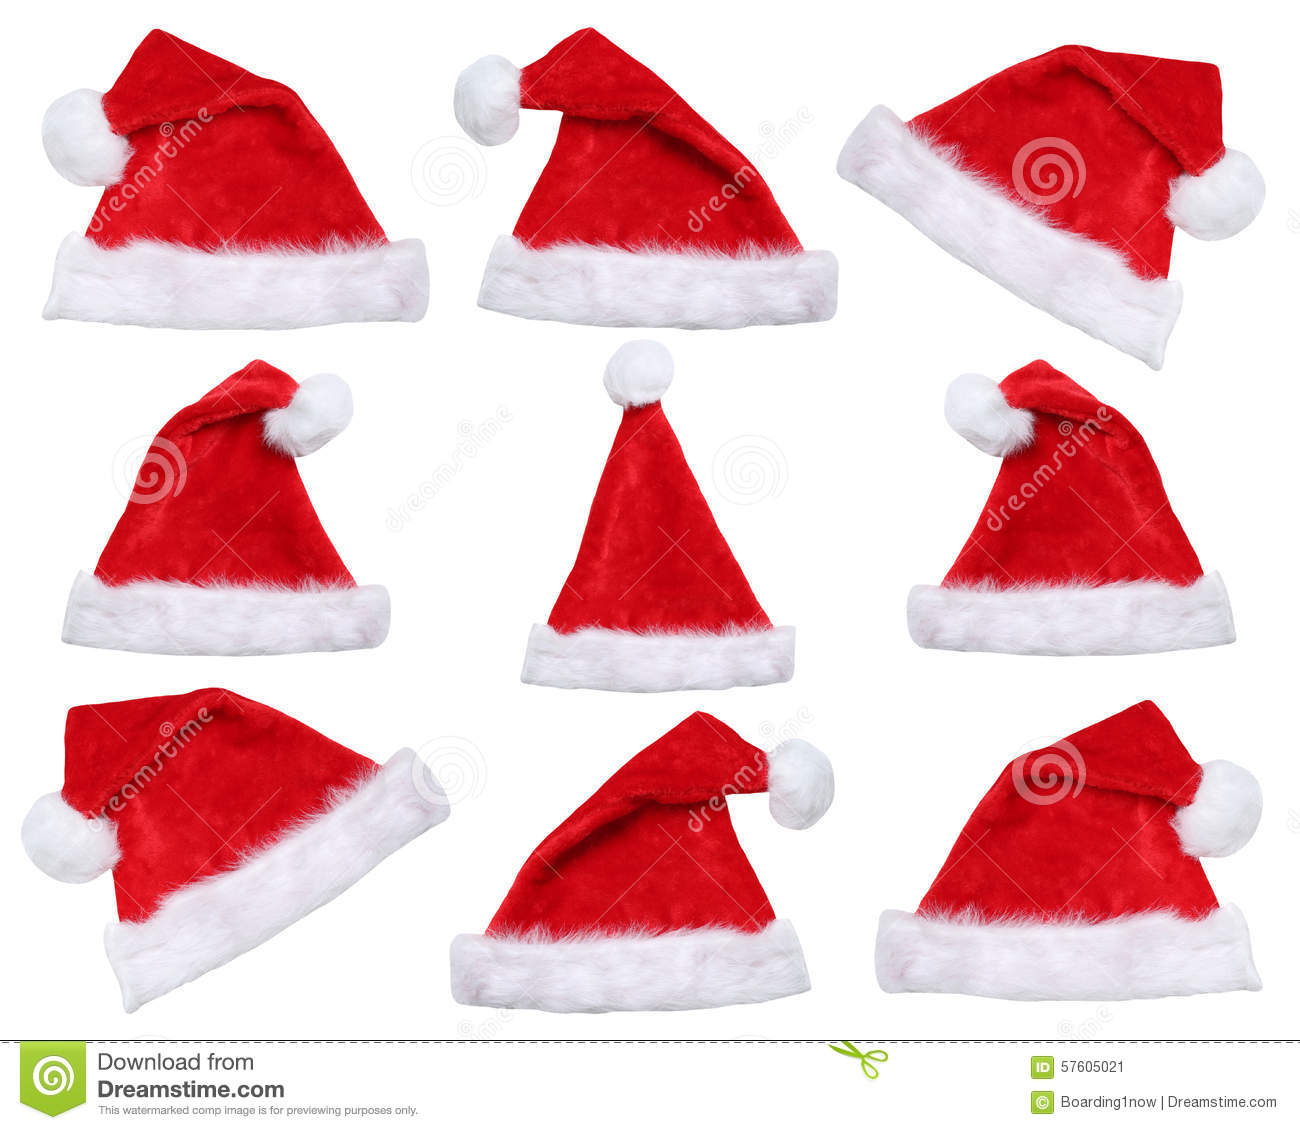 Set of Santa Claus hats on Christmas in winter isolated